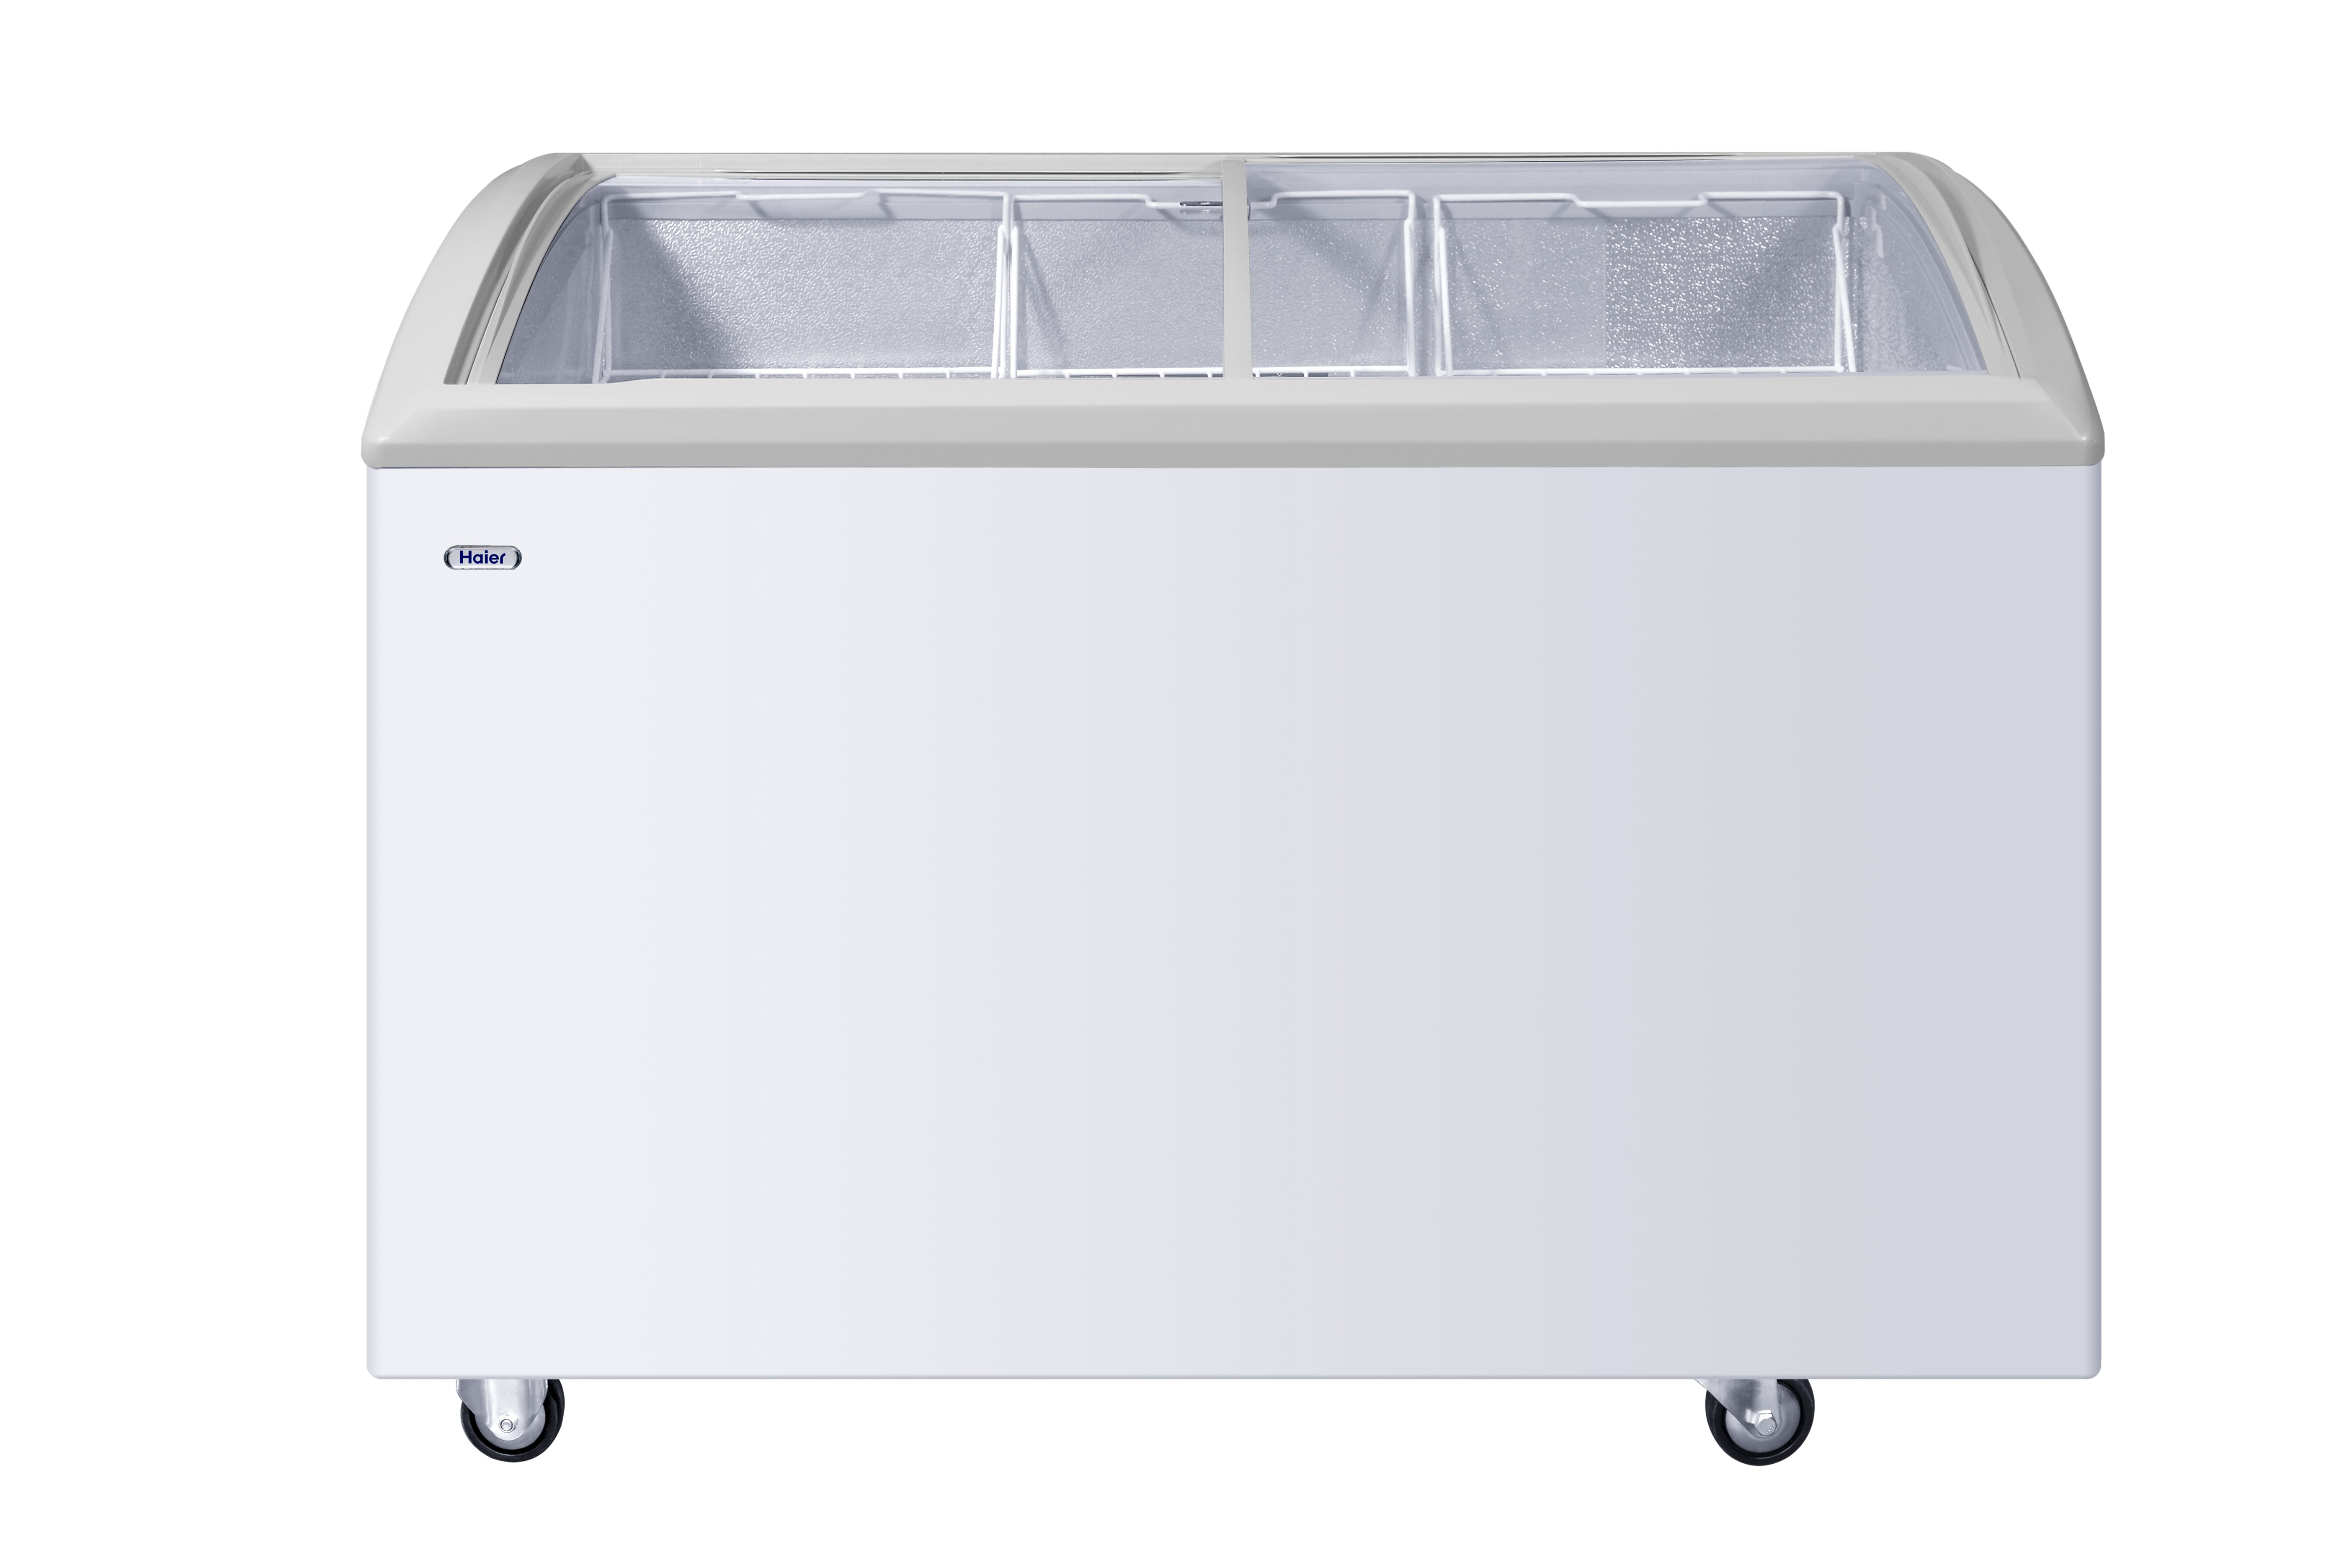 Haier Metal Liner 300 Ltrs Curved Glass Top Freezer, HCF-300GHCM